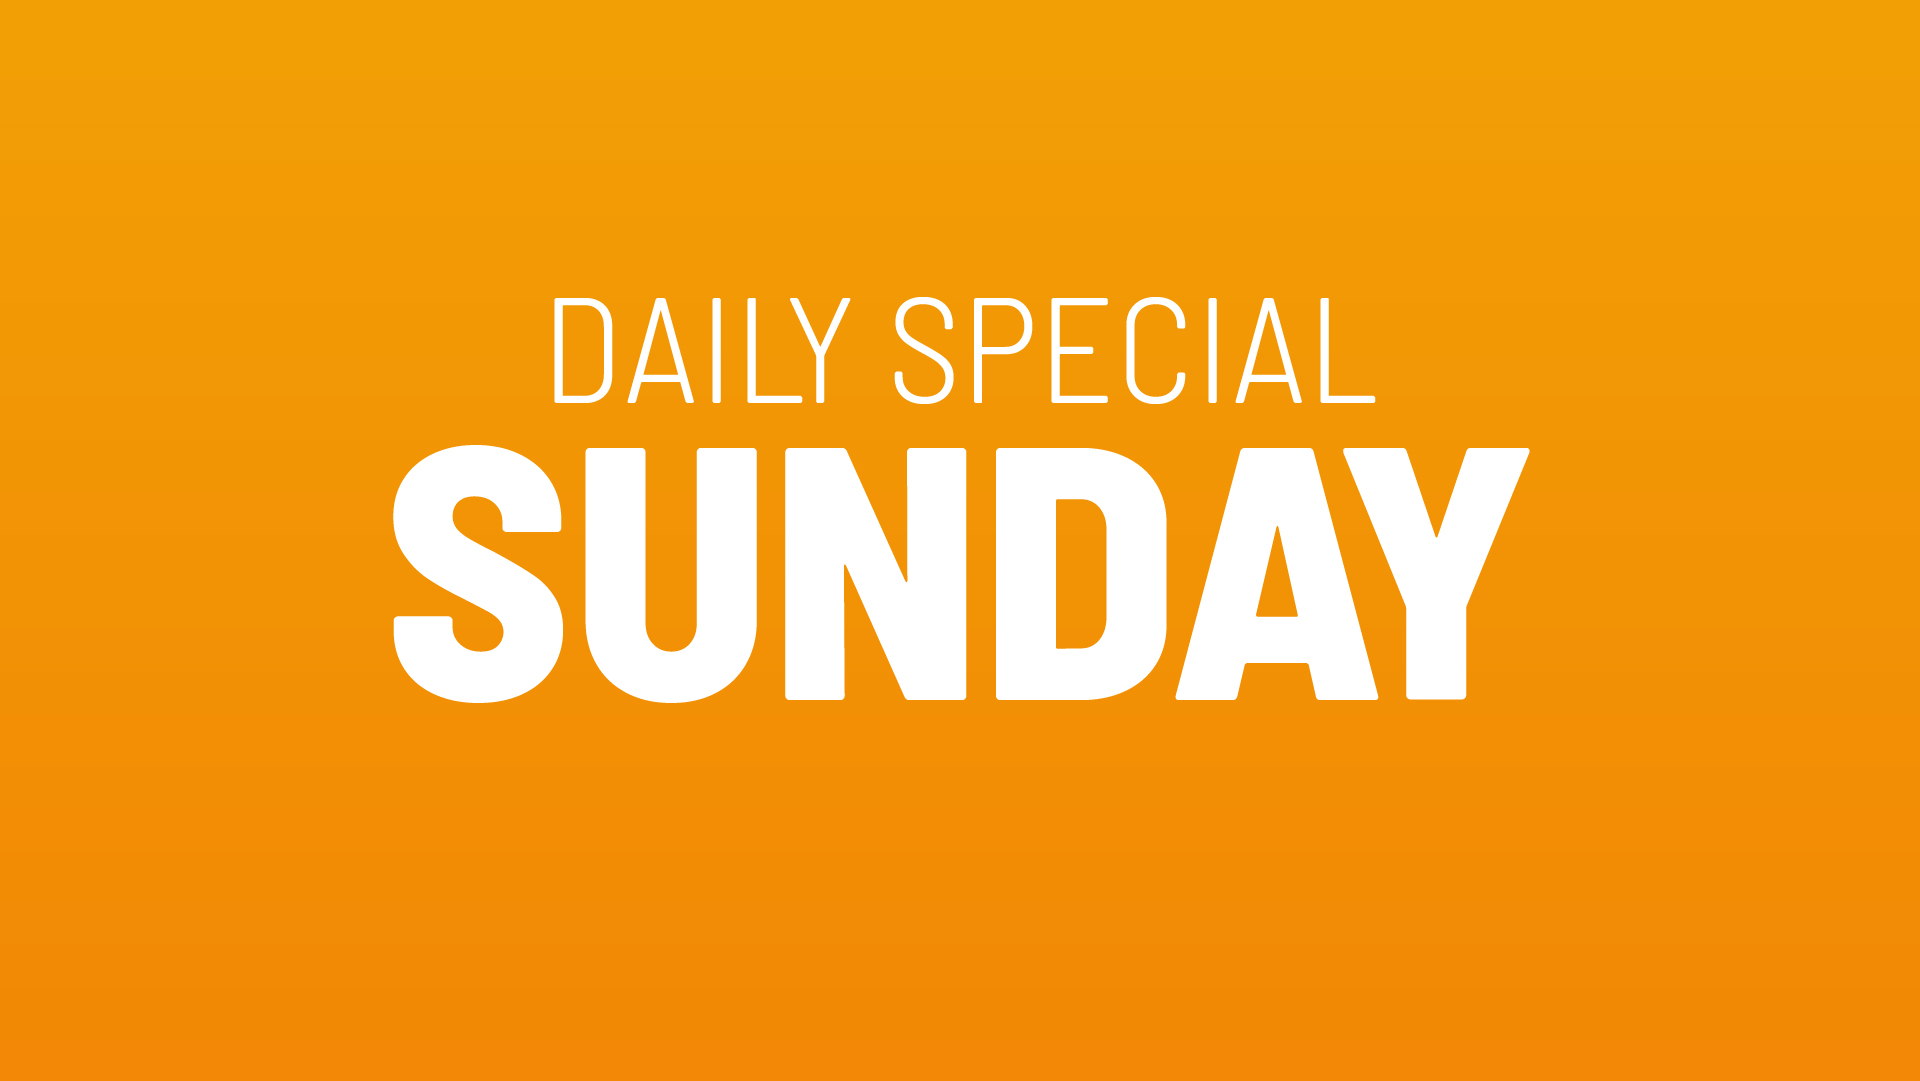 Sunday's Daily Special